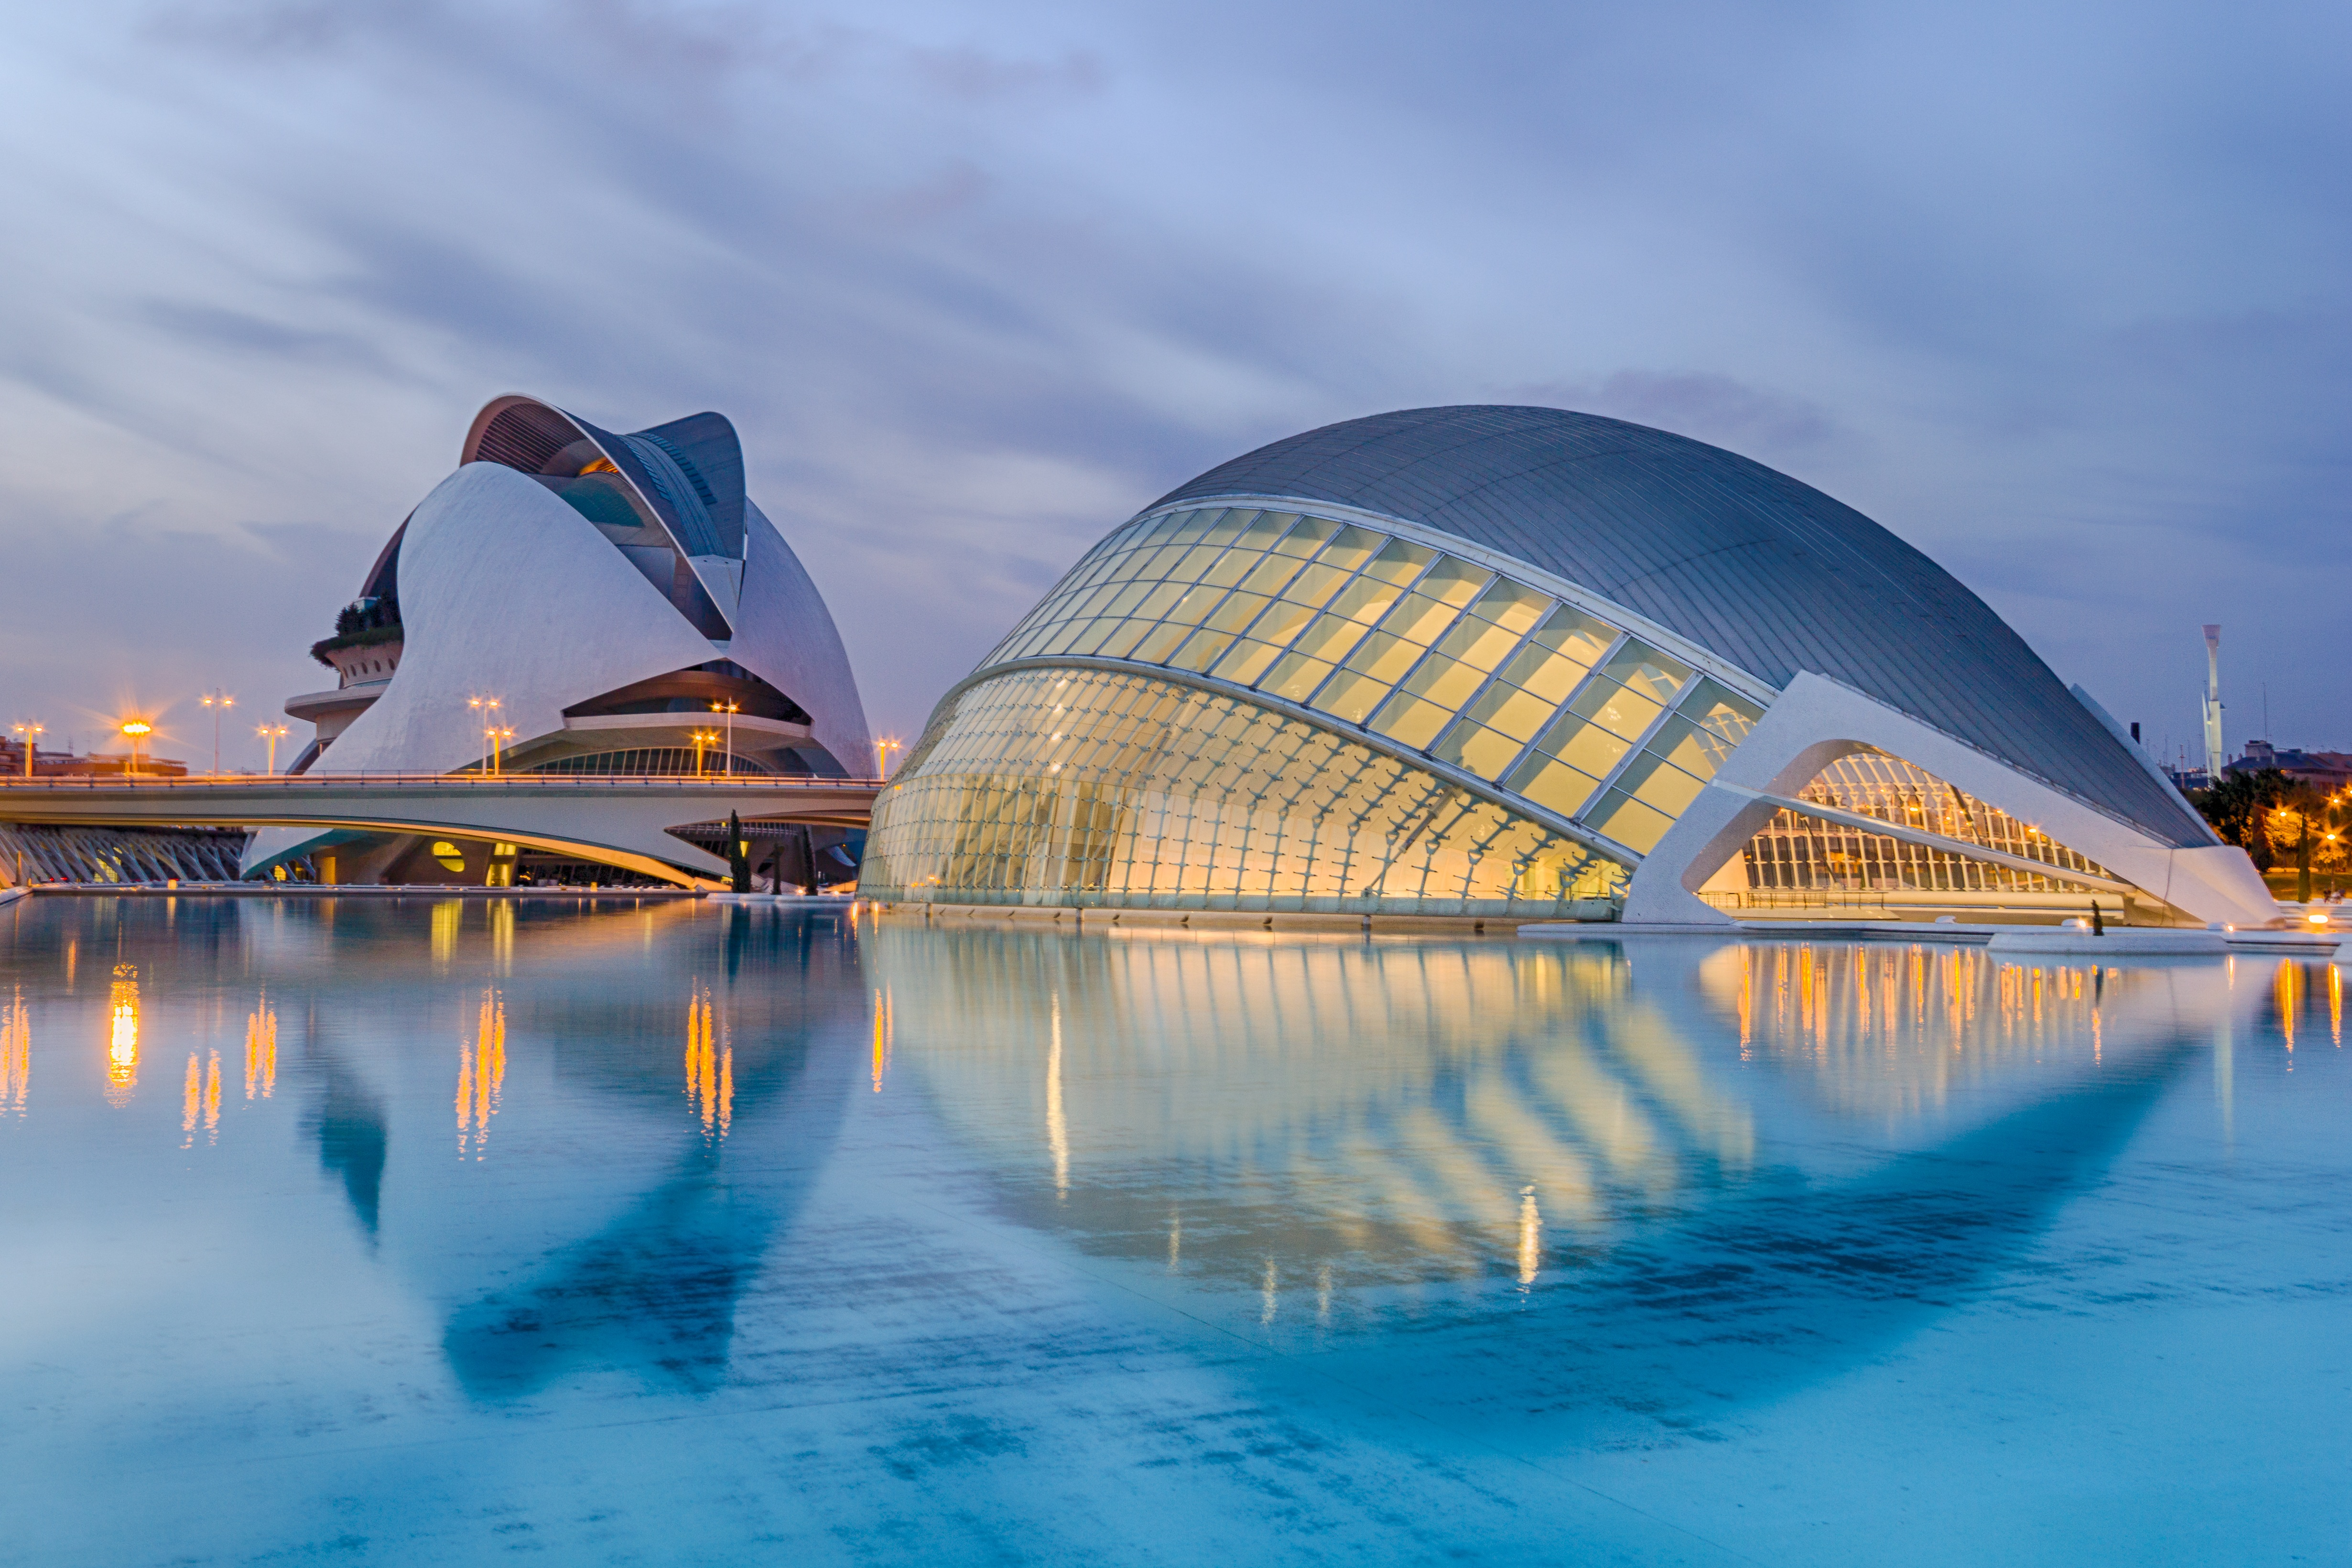 Tour the City of Arts and Sciences, Things to do for free in Valencia